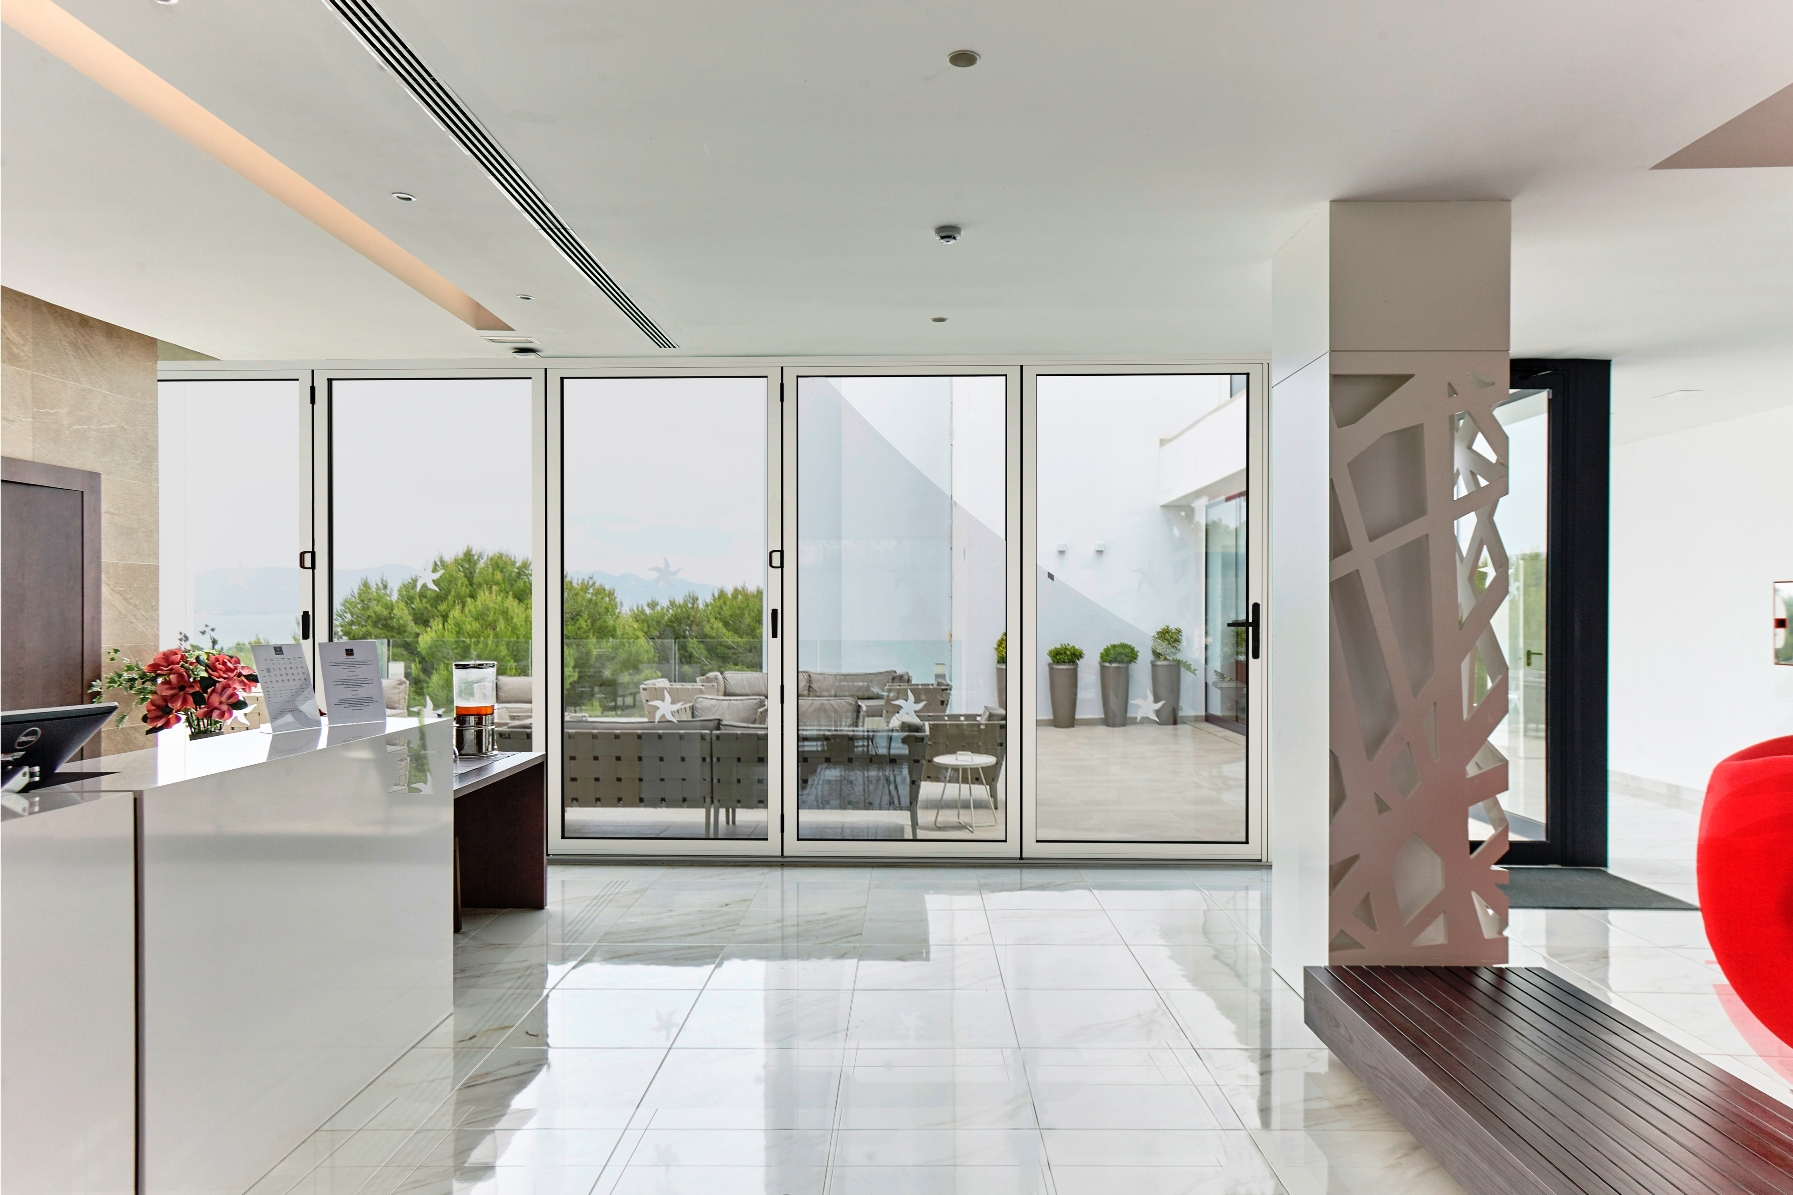 Eurocell extends its range of bi-fold doors